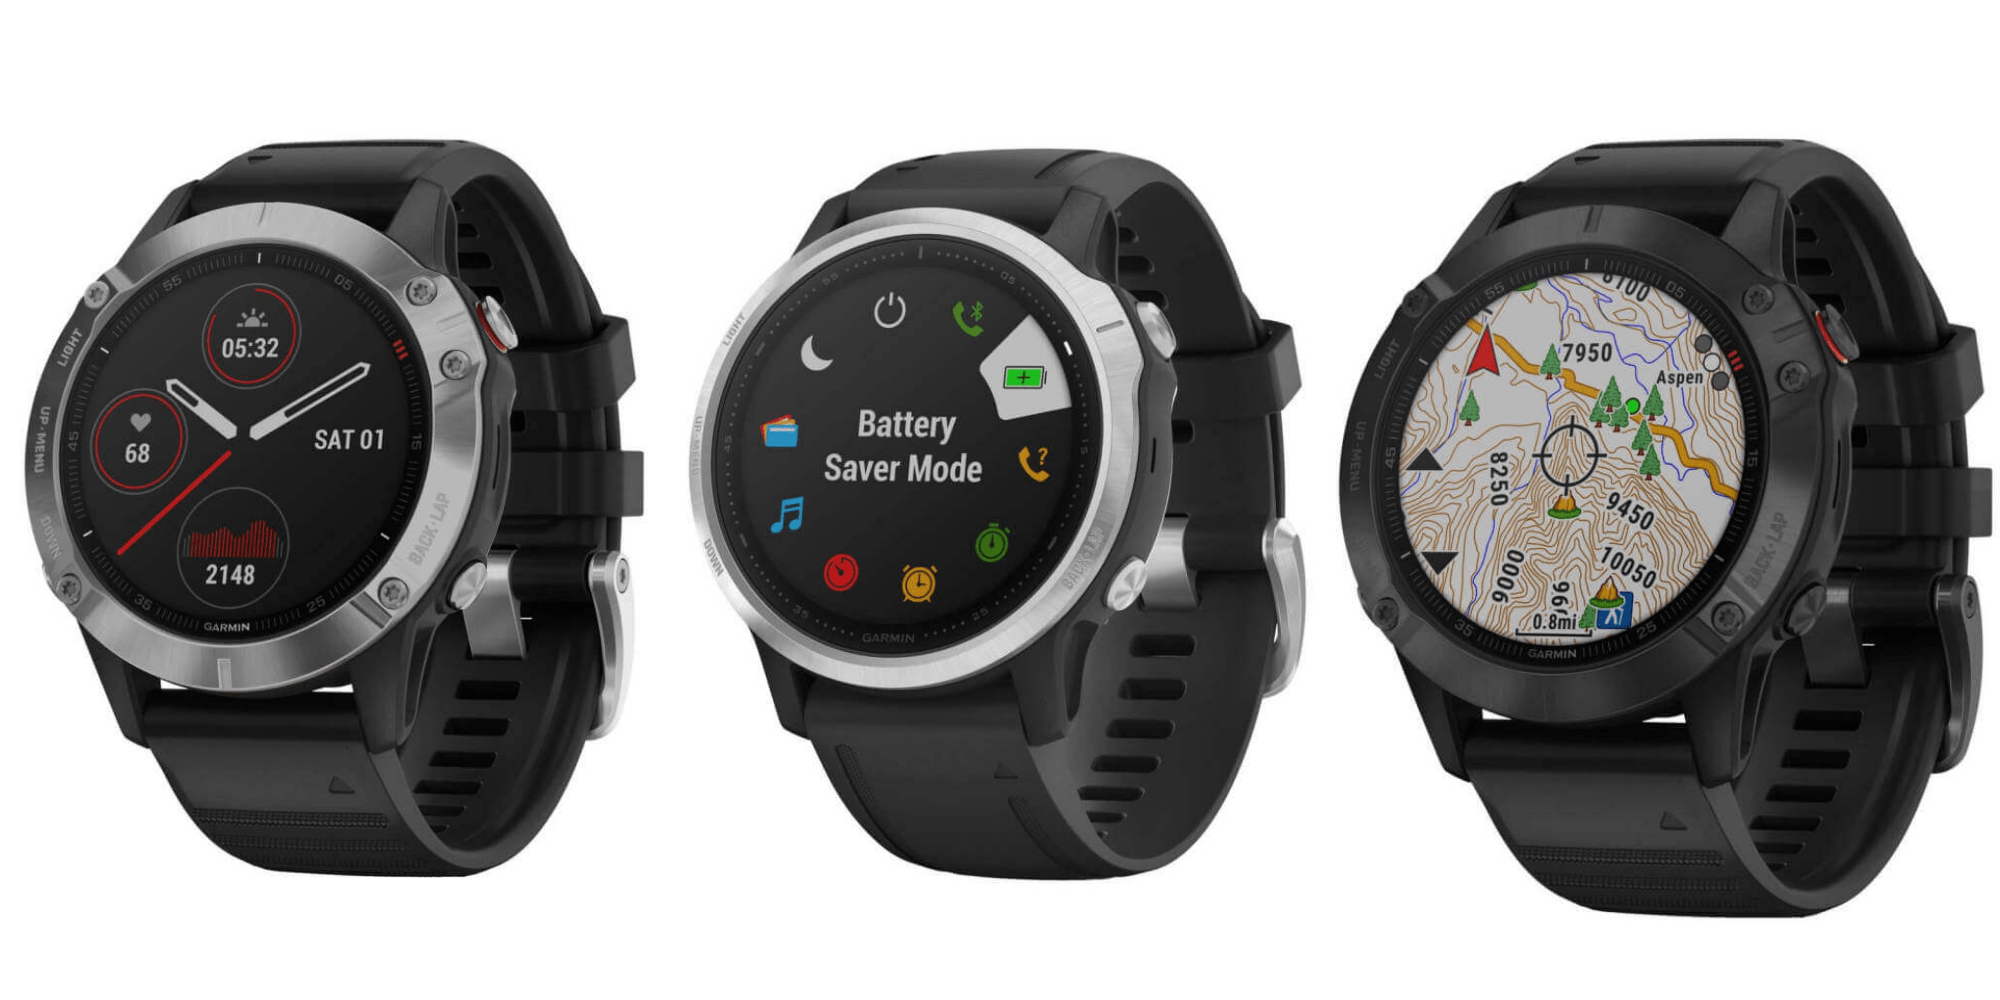 Huawei Watch GT2 leaks with larger screen, smaller bezel